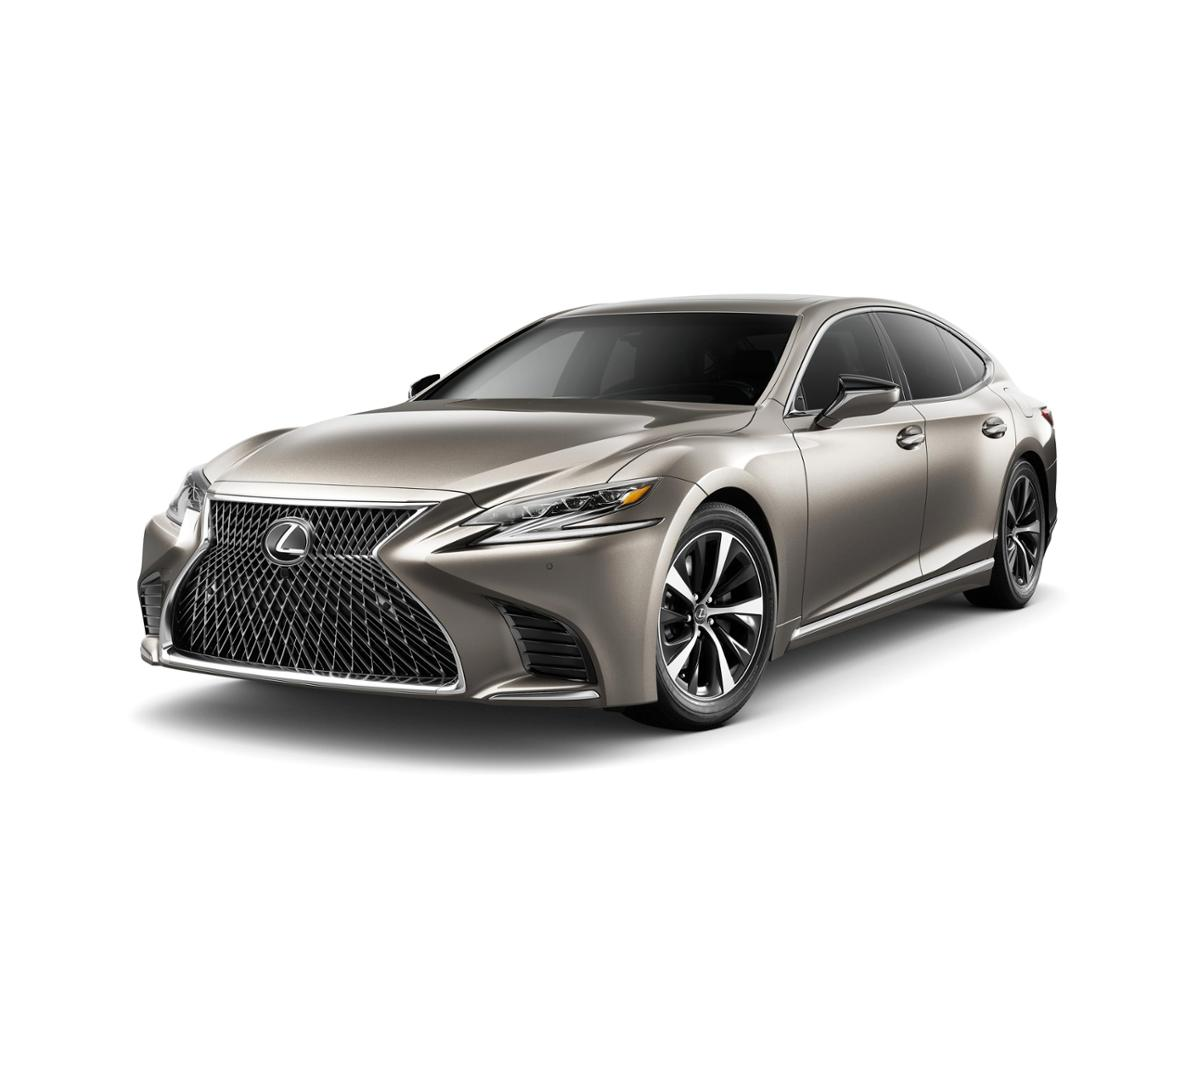 2018 Lexus LS 500 Vehicle Photo in Mission Viejo, CA 92692